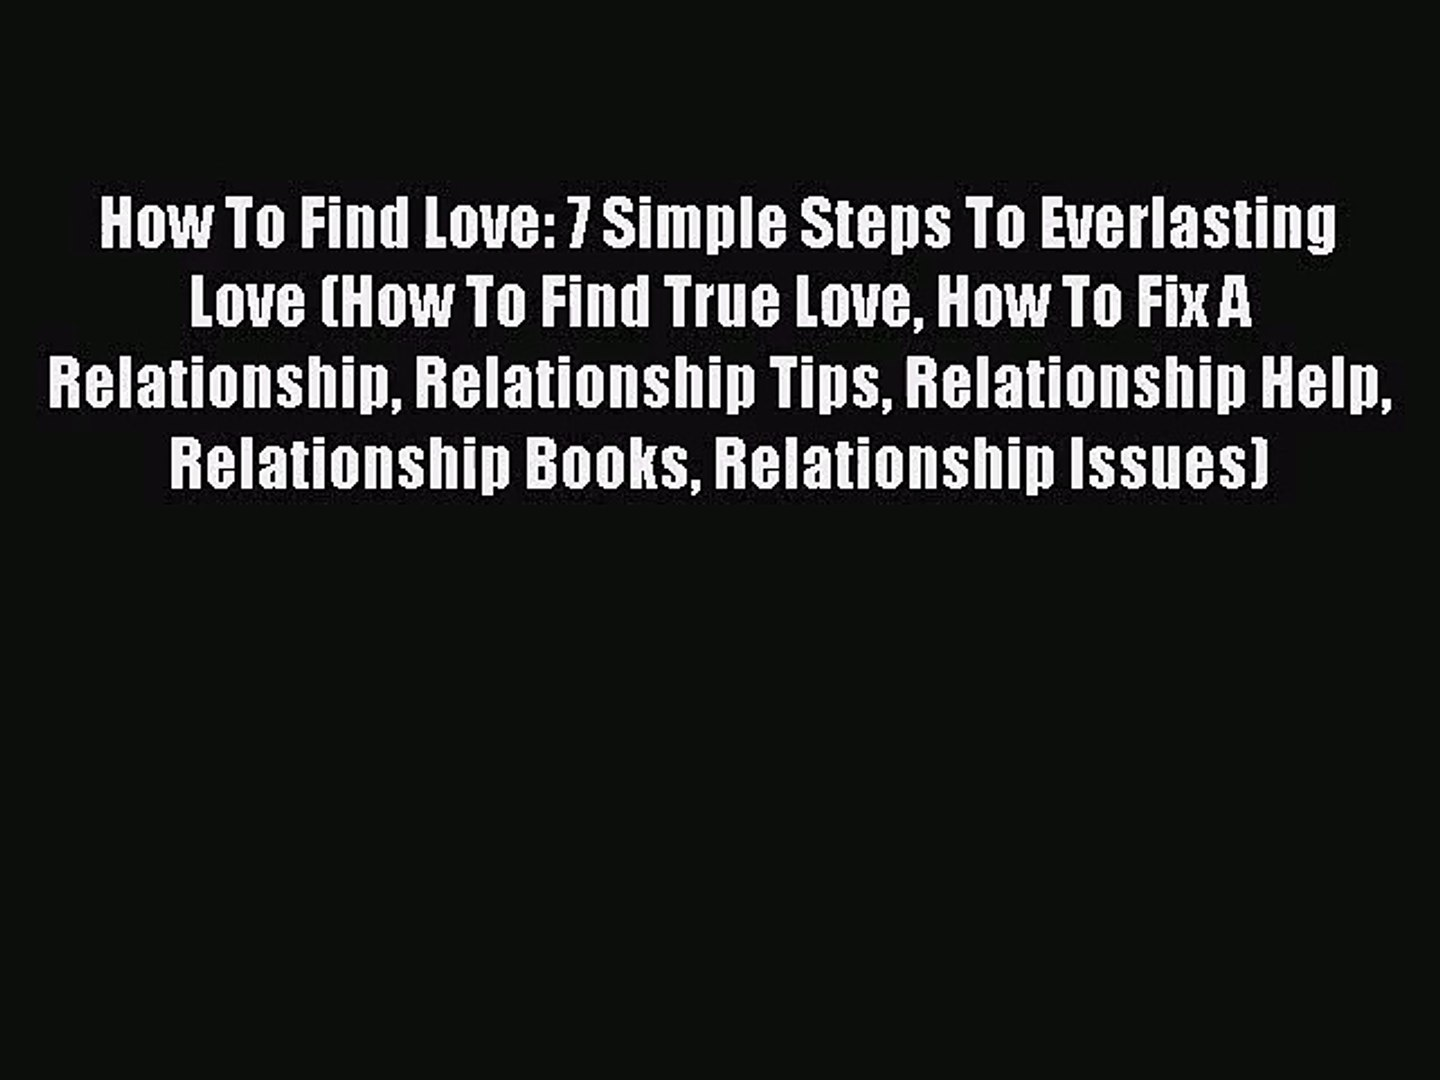 How To Find Love: 7 Simple Steps To Everlasting Love (How To Find True Love How To Fix A Relationshi